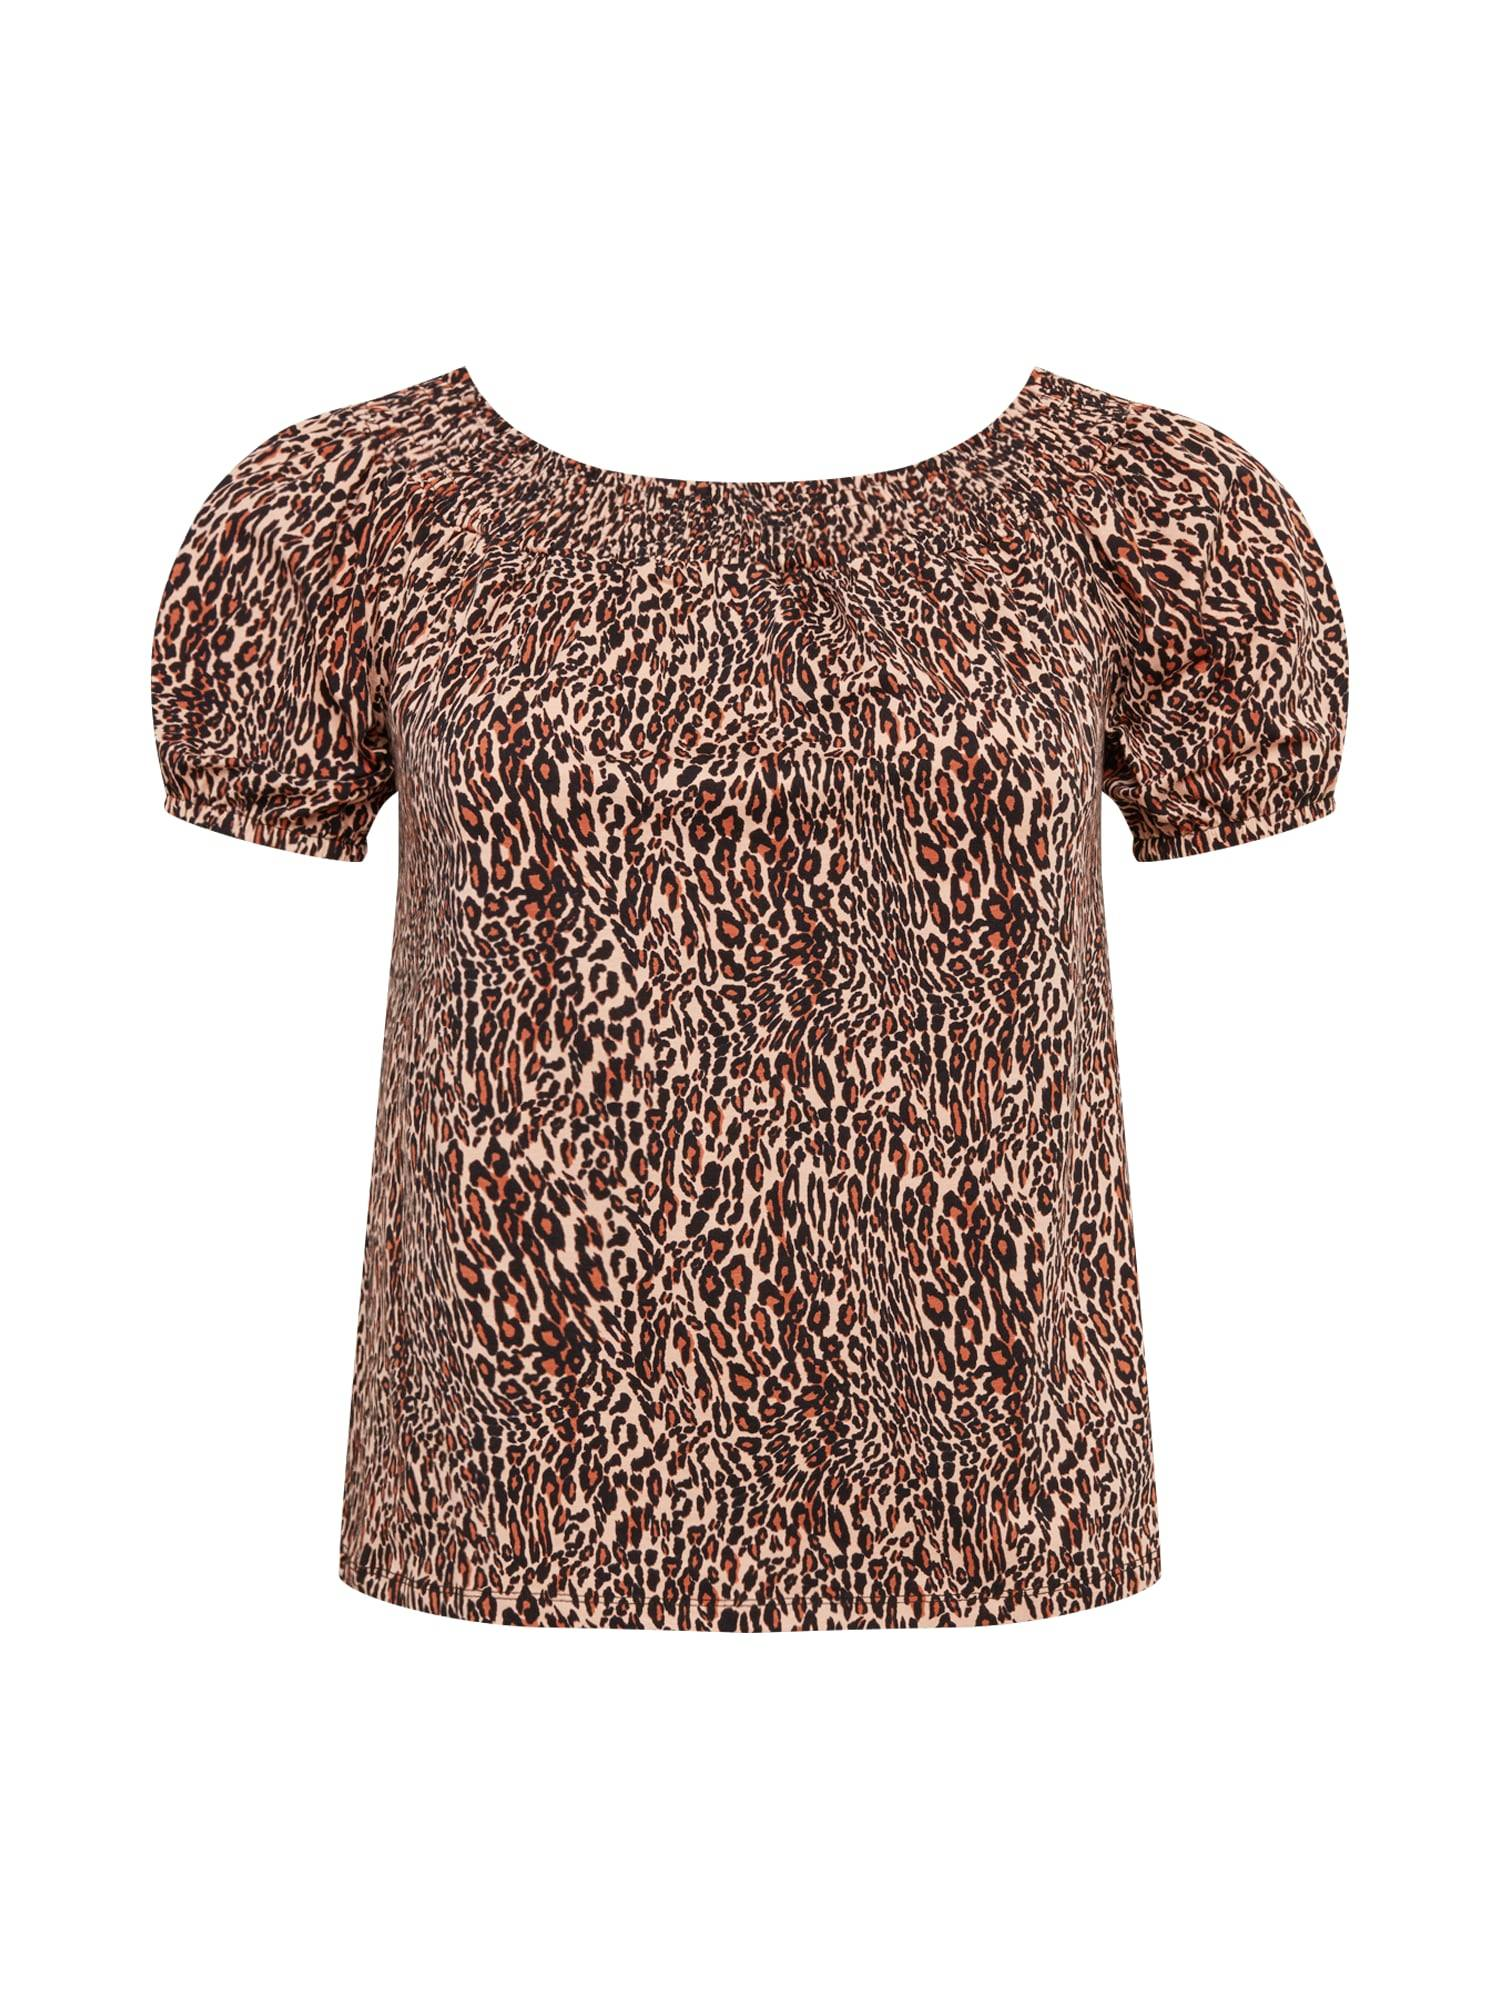 Dorothy Perkins Curve T-shirt  - Marron - Taille: 26 - female